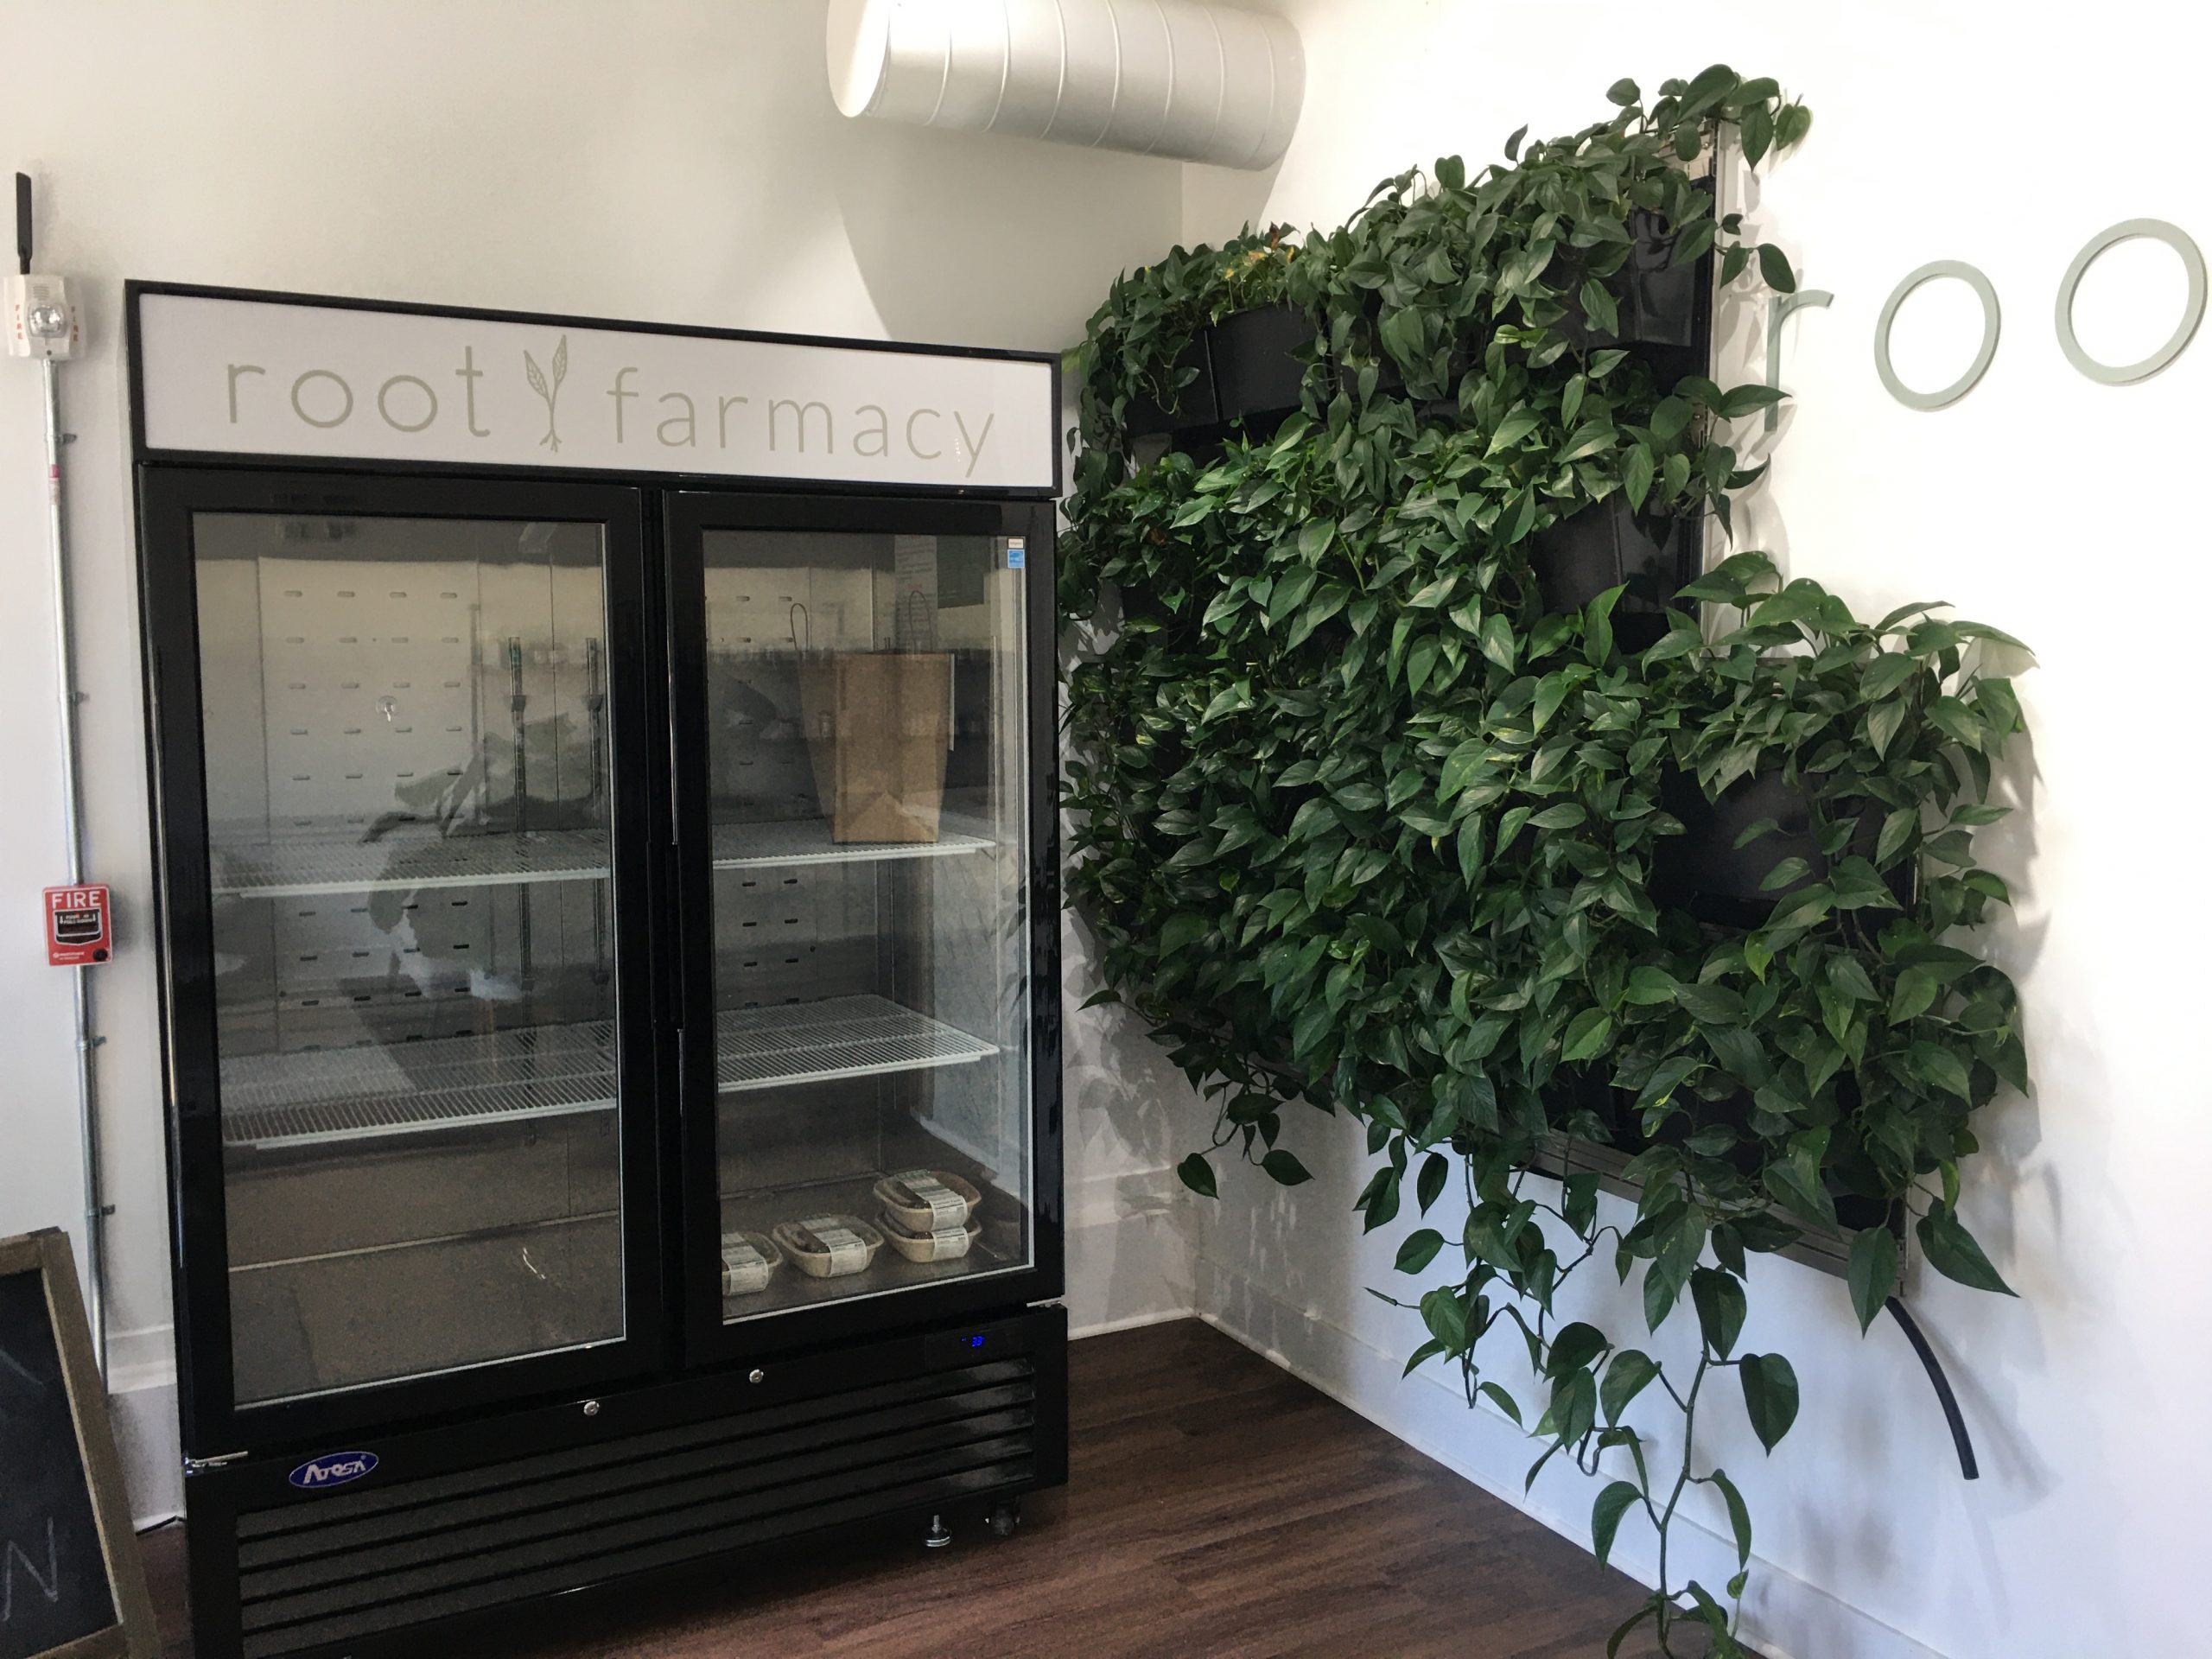 Root Functional Medicine's Green Wall Helps to Purify the Air in their Shop